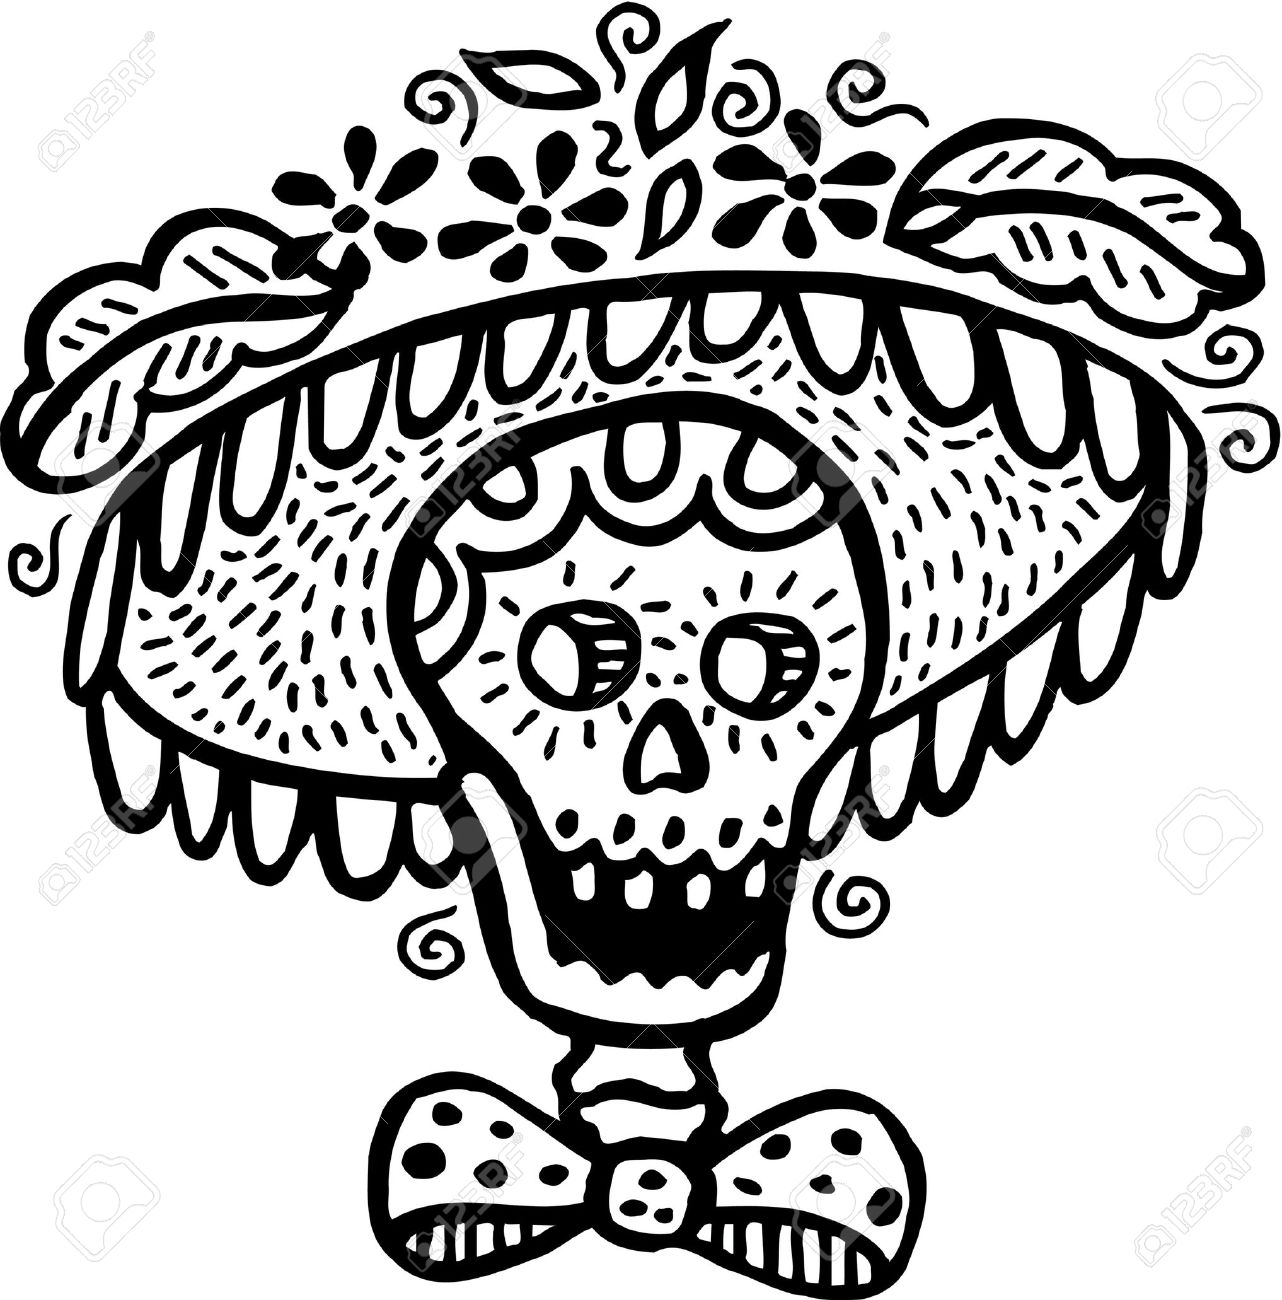 A Black And White Picture Of A Skull Wearing A Hat Stock Photo